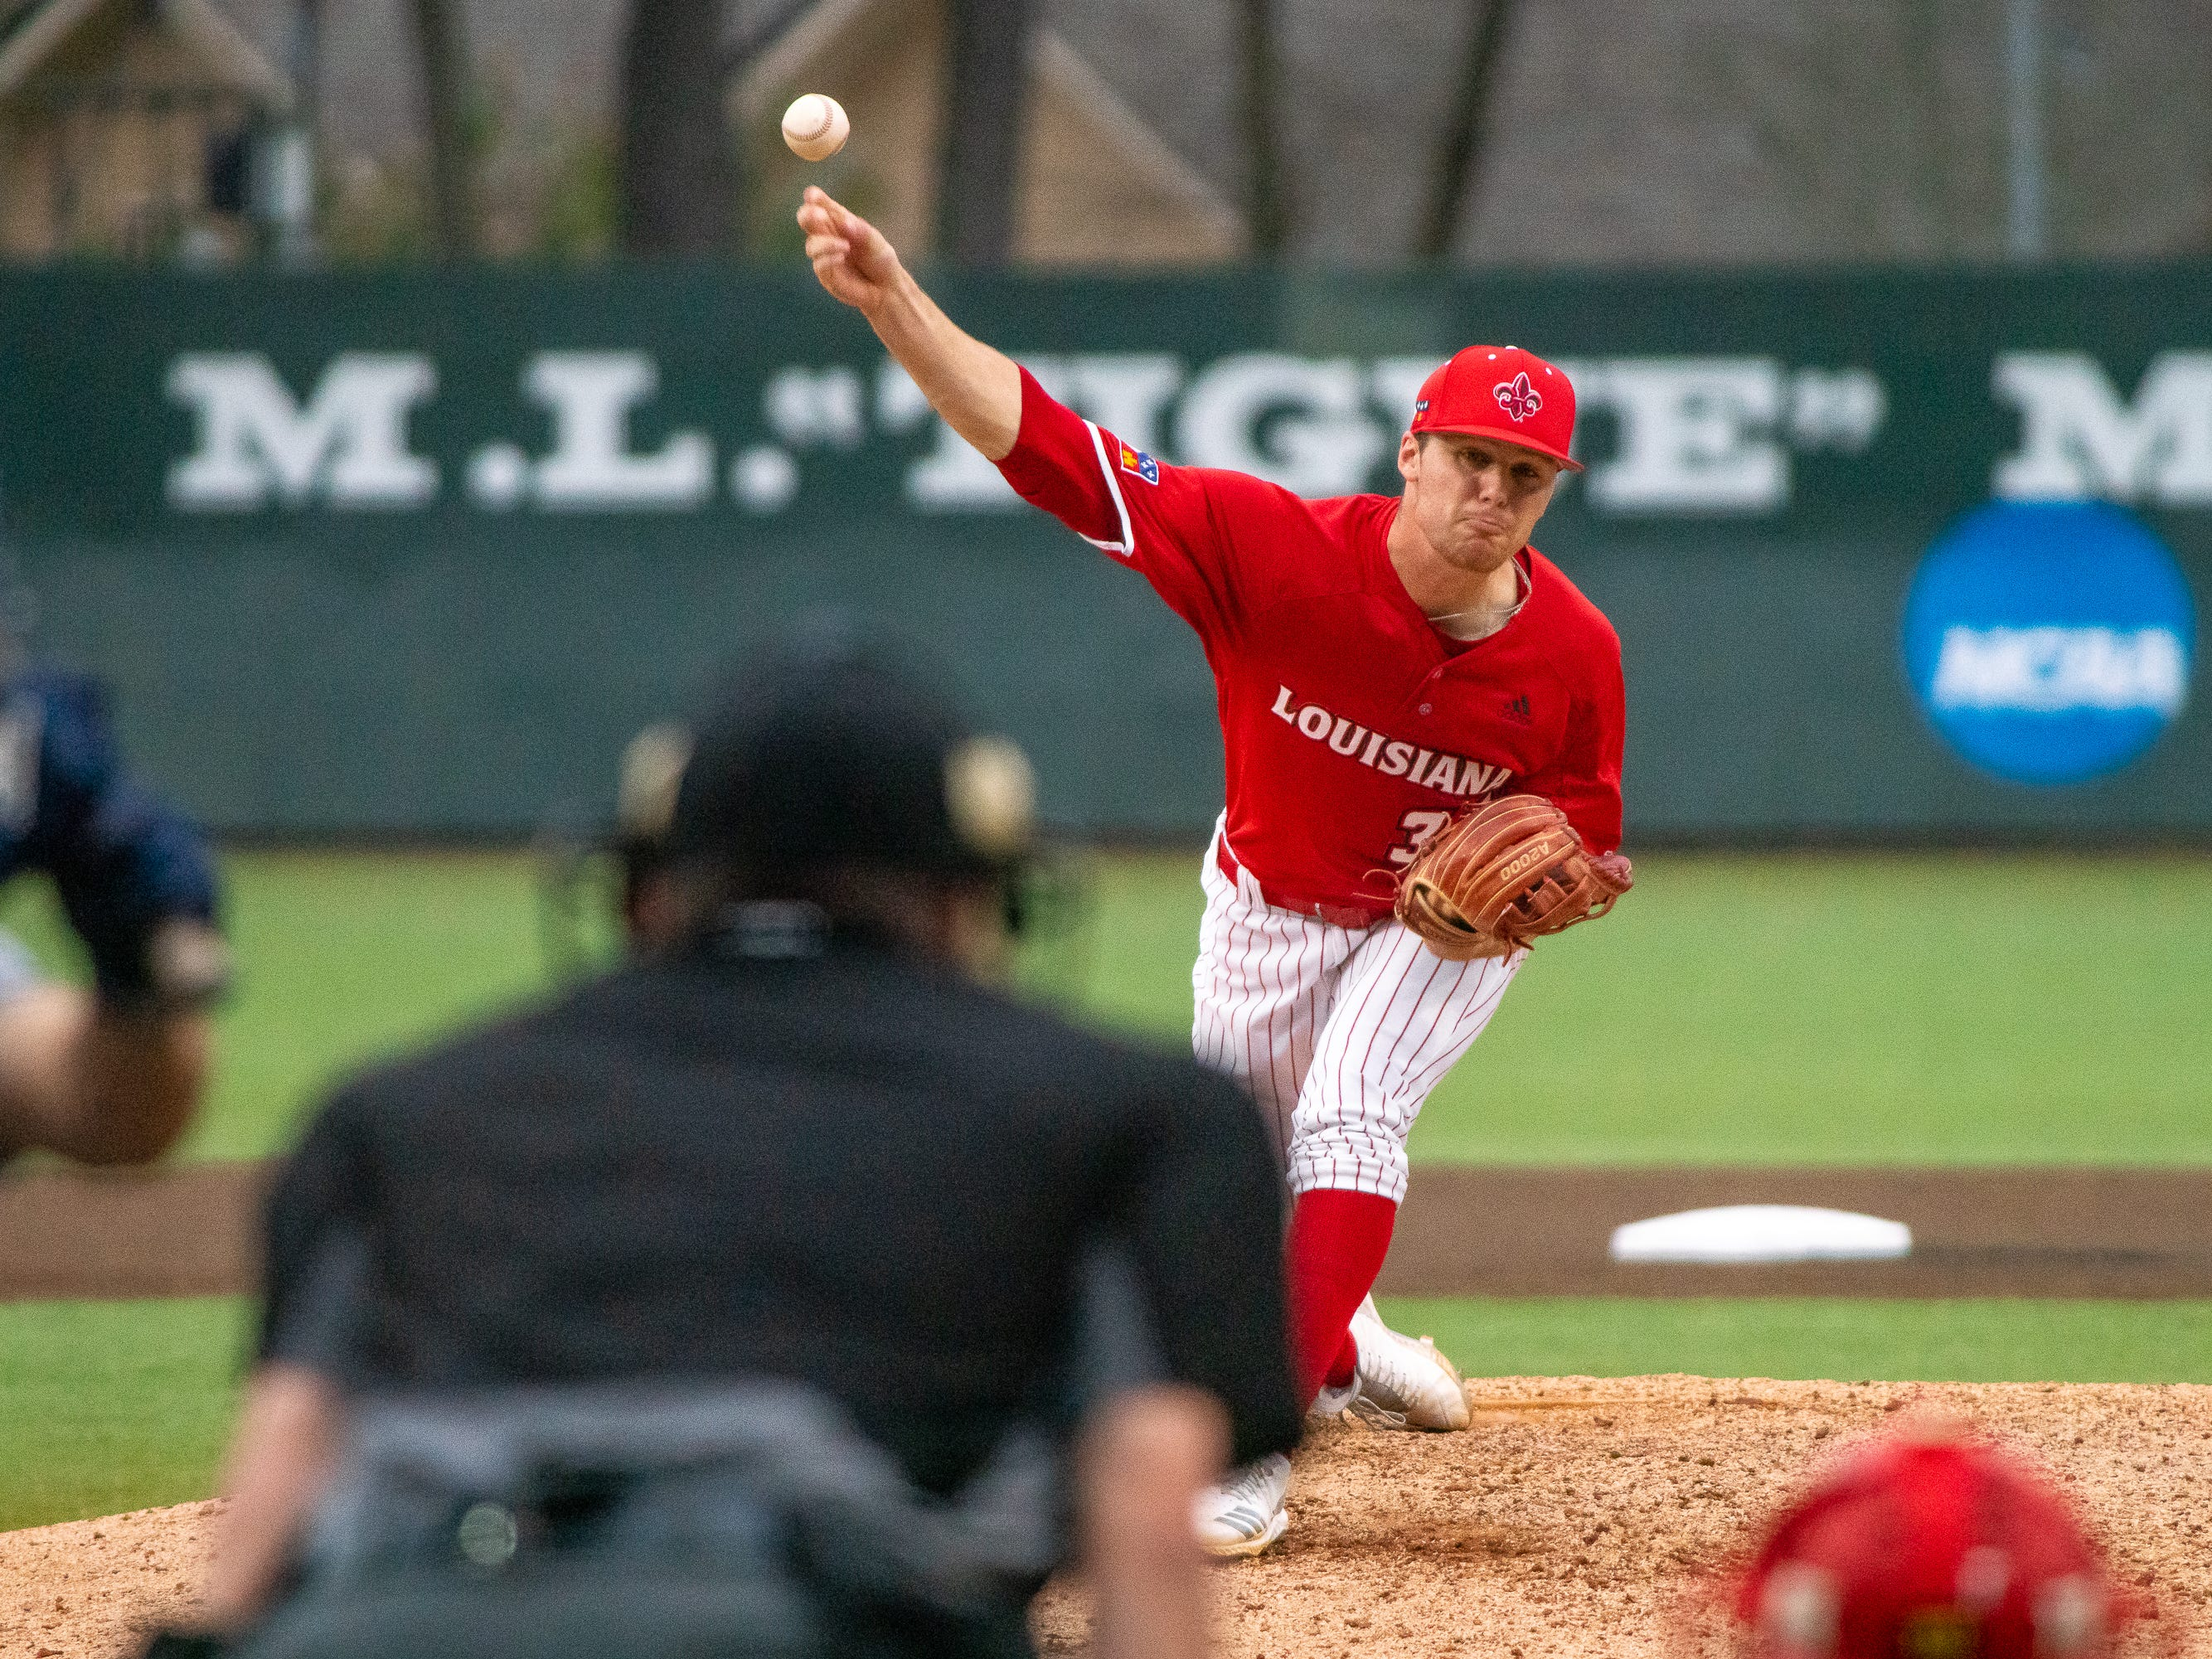 UL's Michael Leaumont throws the pitch to the batter as the Ragin' Cajuns take on the Loyola-Marymount Lions at M.L. Tigue Moore Field on Saturday, March 9, 2019.